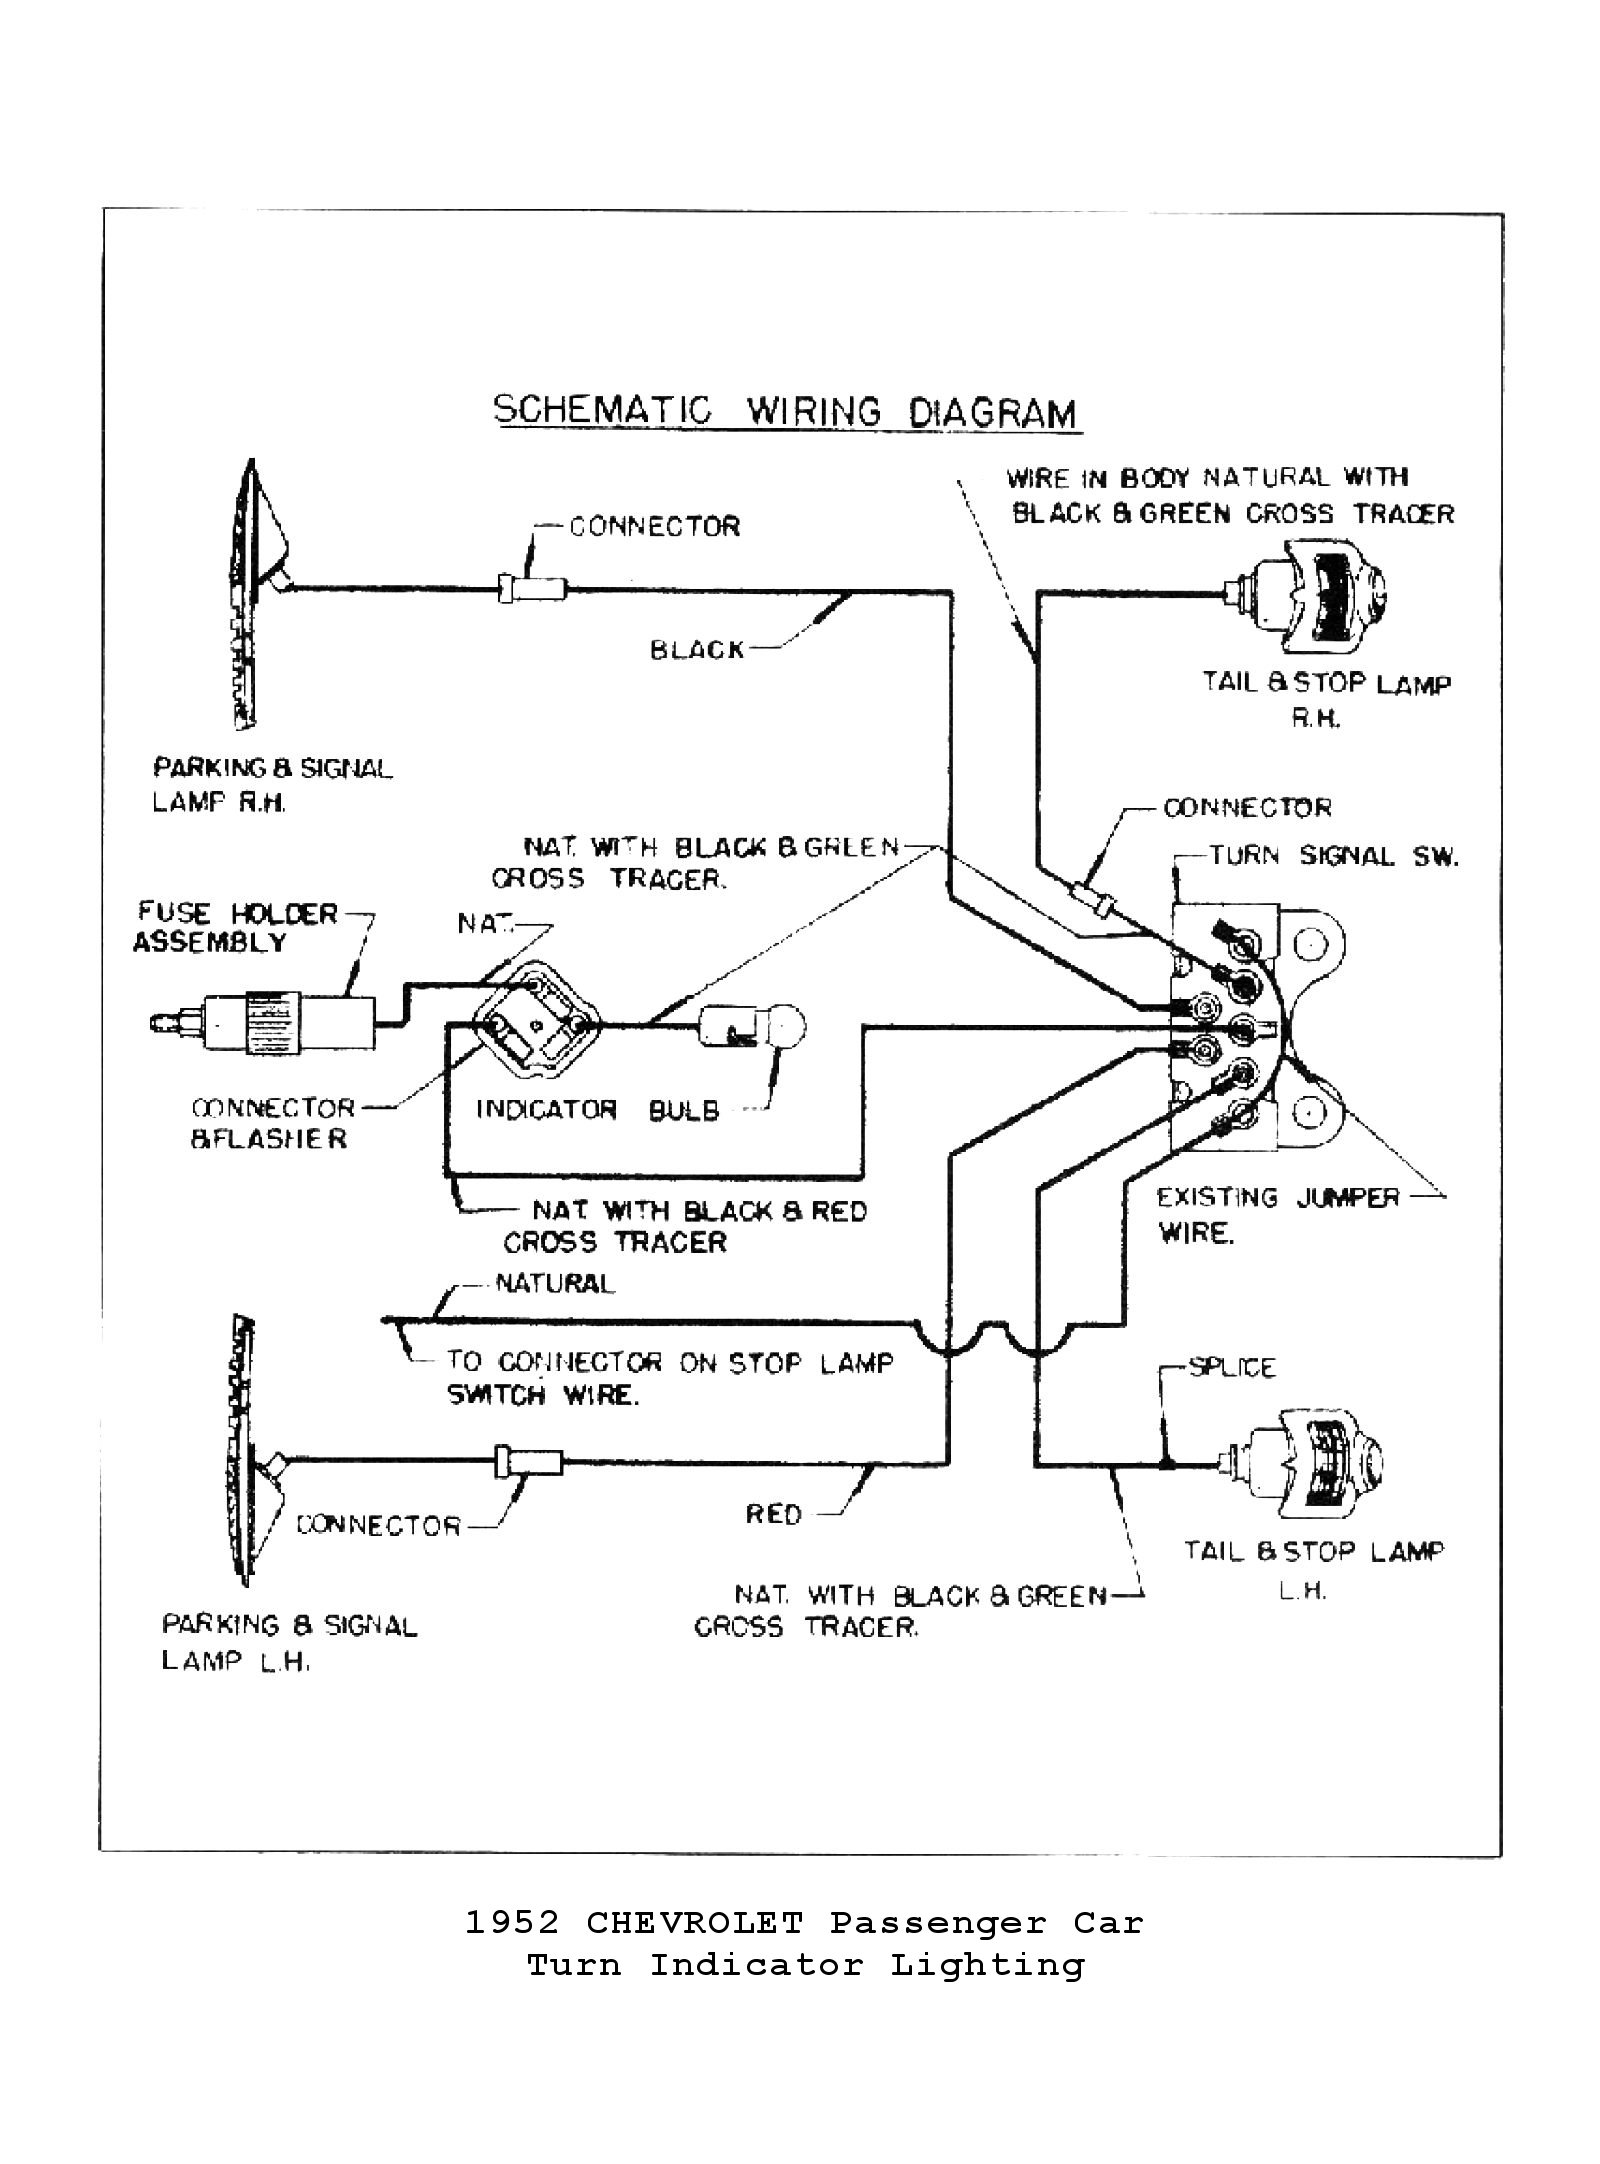 1955 Chevy Turn Signal Wiring Diagram Free Download Diagrams Ford For Signals 38 Gm